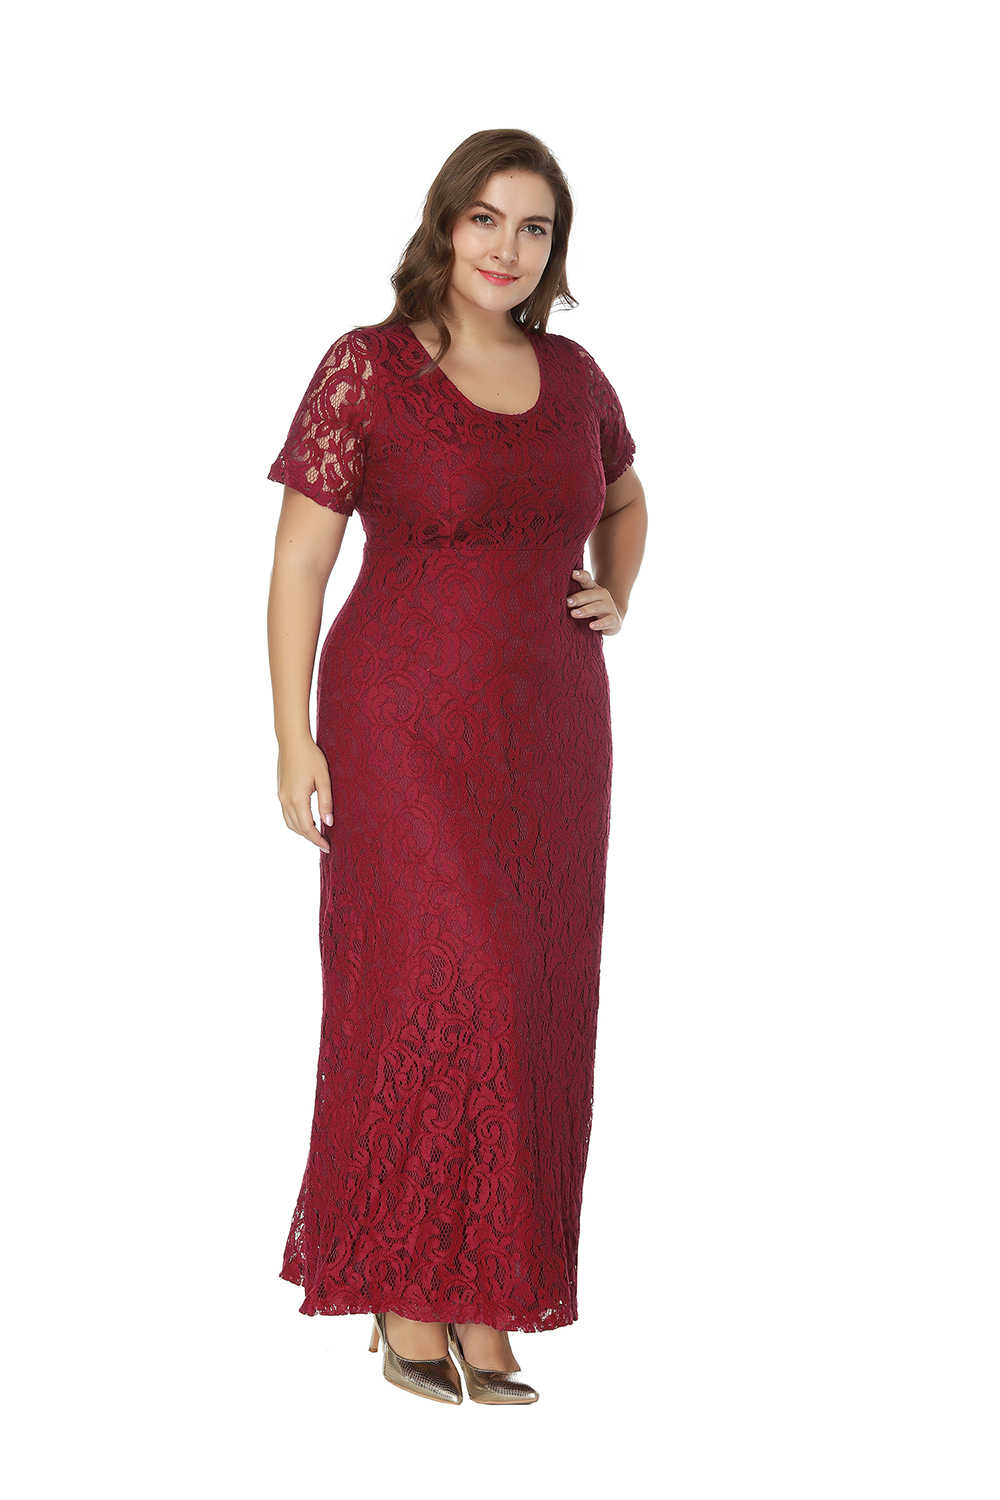 a6c74e8acb57 ... Burgundy Plus Size Bridesmaid Dresses Short Sleeve Lace Dress For  Wedding Party Cheap Long Bridesmaid Dress ...